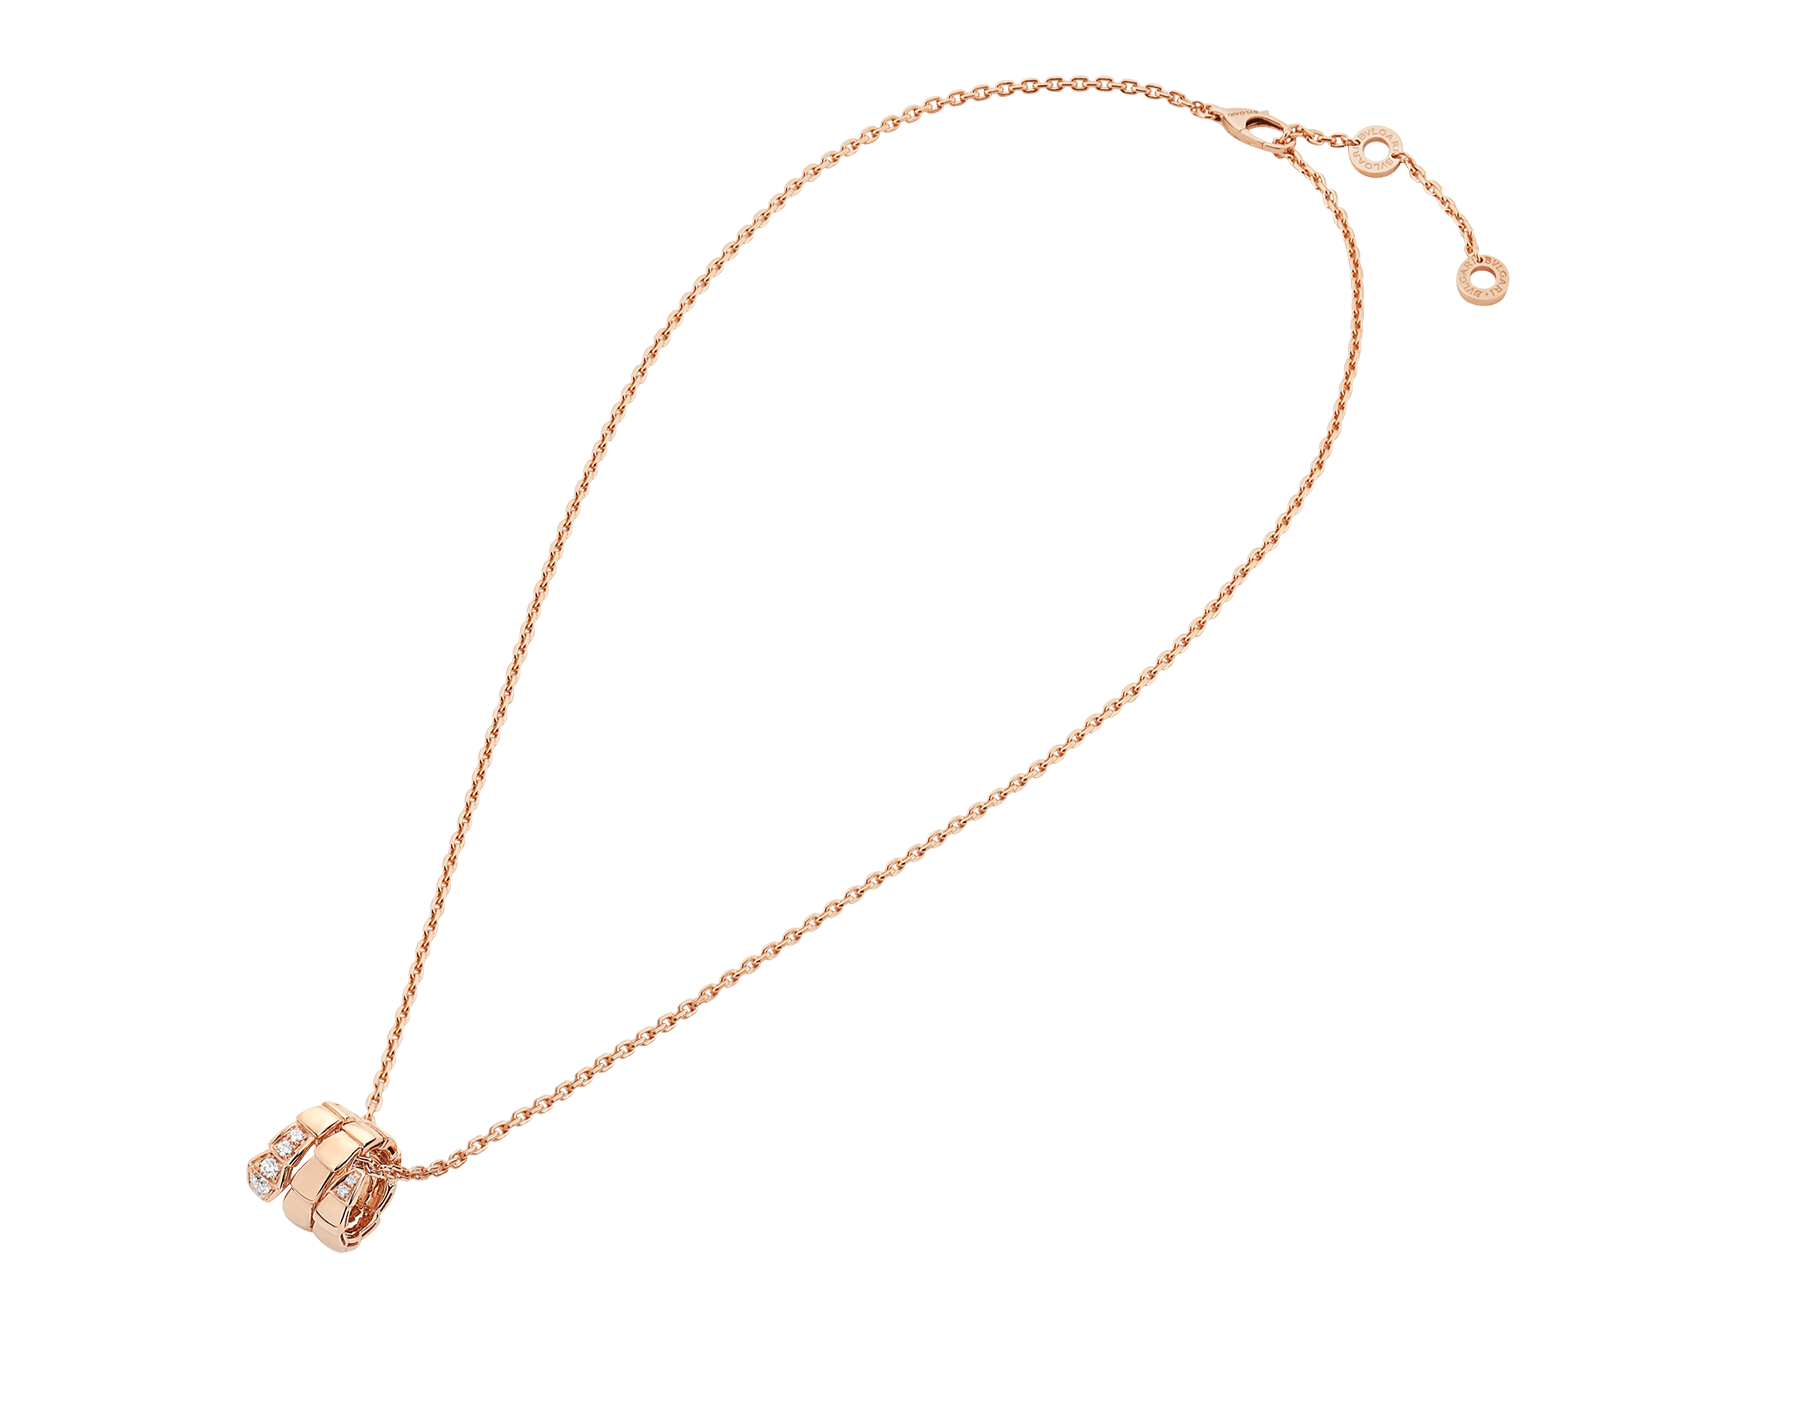 Serpenti Viper pendant necklace in 18 kt rose gold set with demi-pavé diamonds 357794 image 2